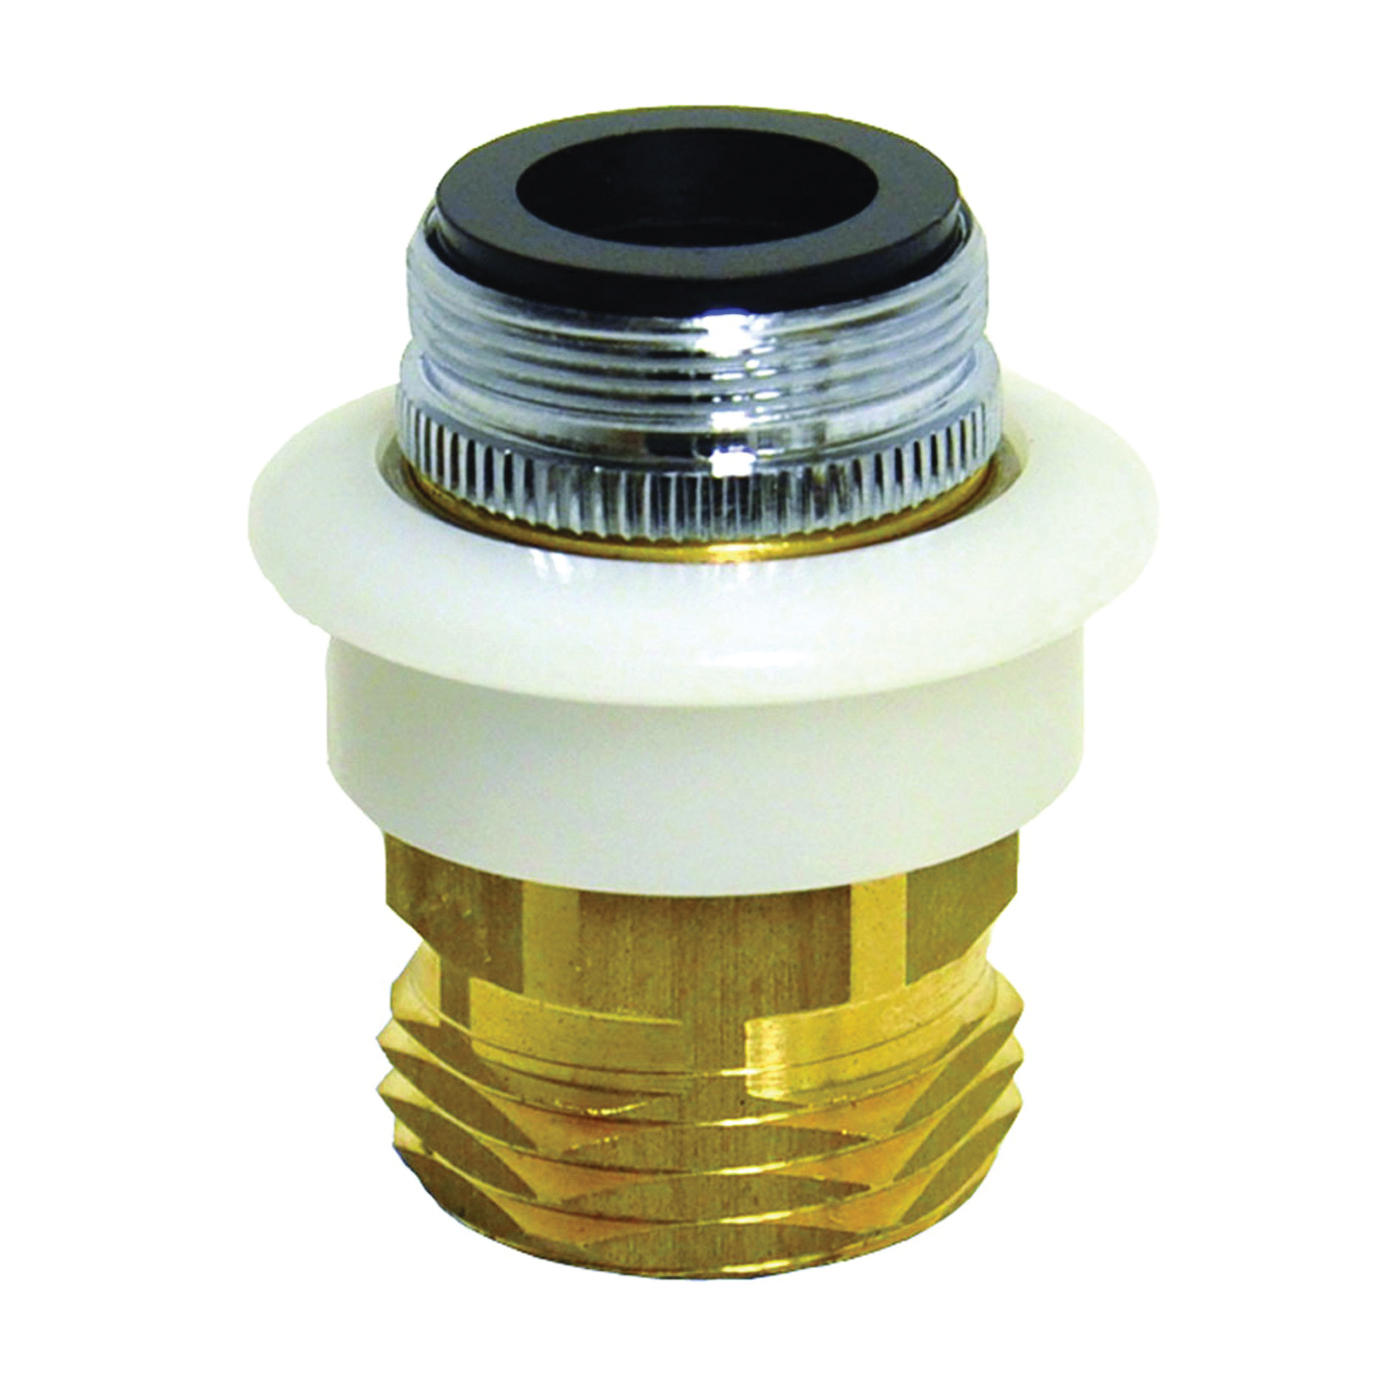 Picture of Danco 10521 Dishwasher Adapter, 15/16-27 x 55/64-27 x 3/4 in, Male/Female x GHTM, Brass, Chrome